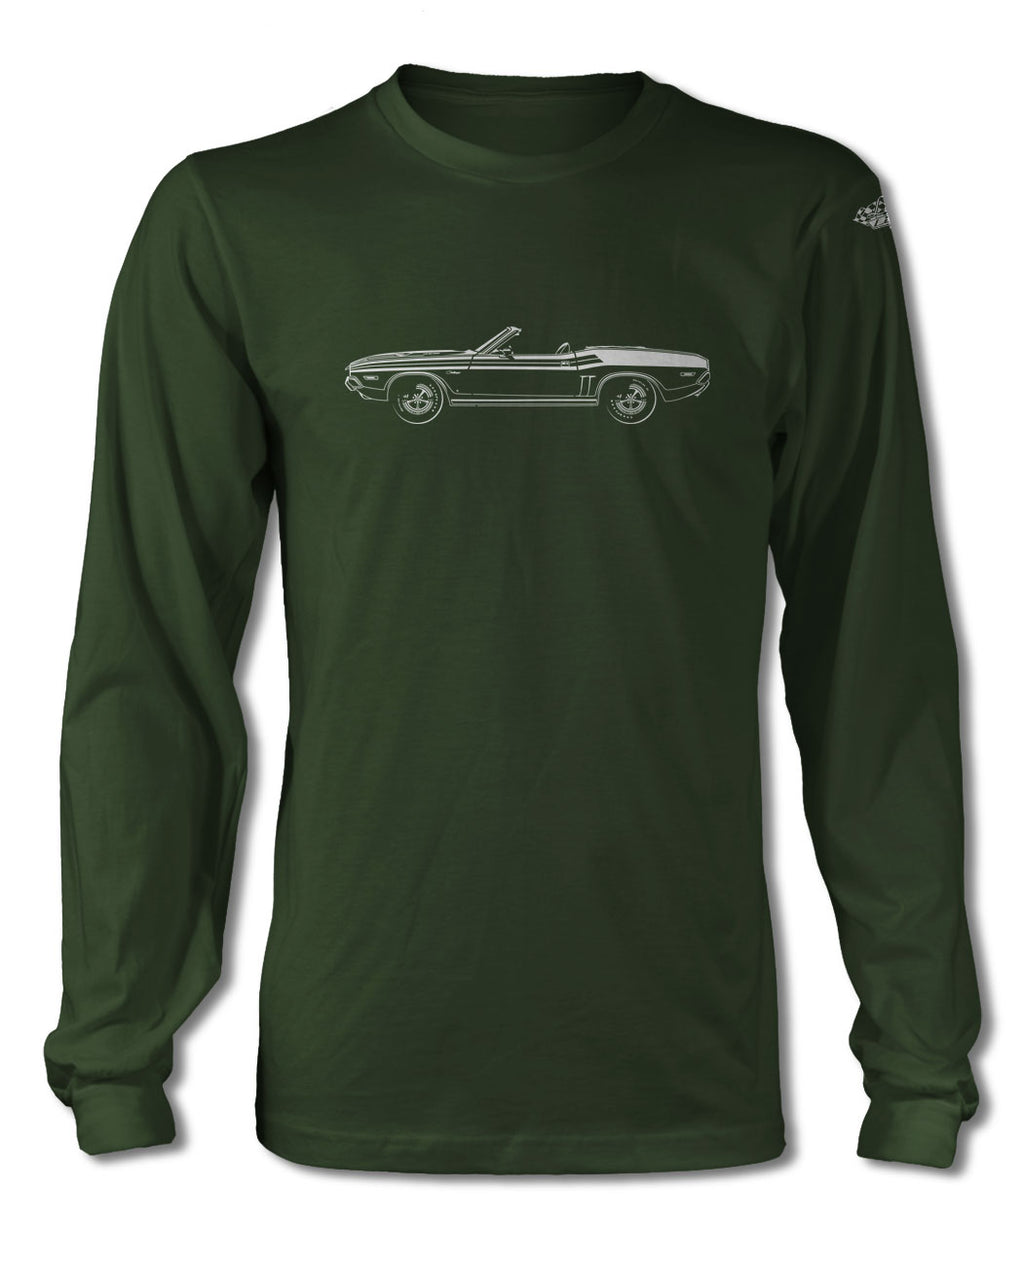 1971 Dodge Challenger with Stripes Convertible T-Shirt - Long Sleeves - Side View